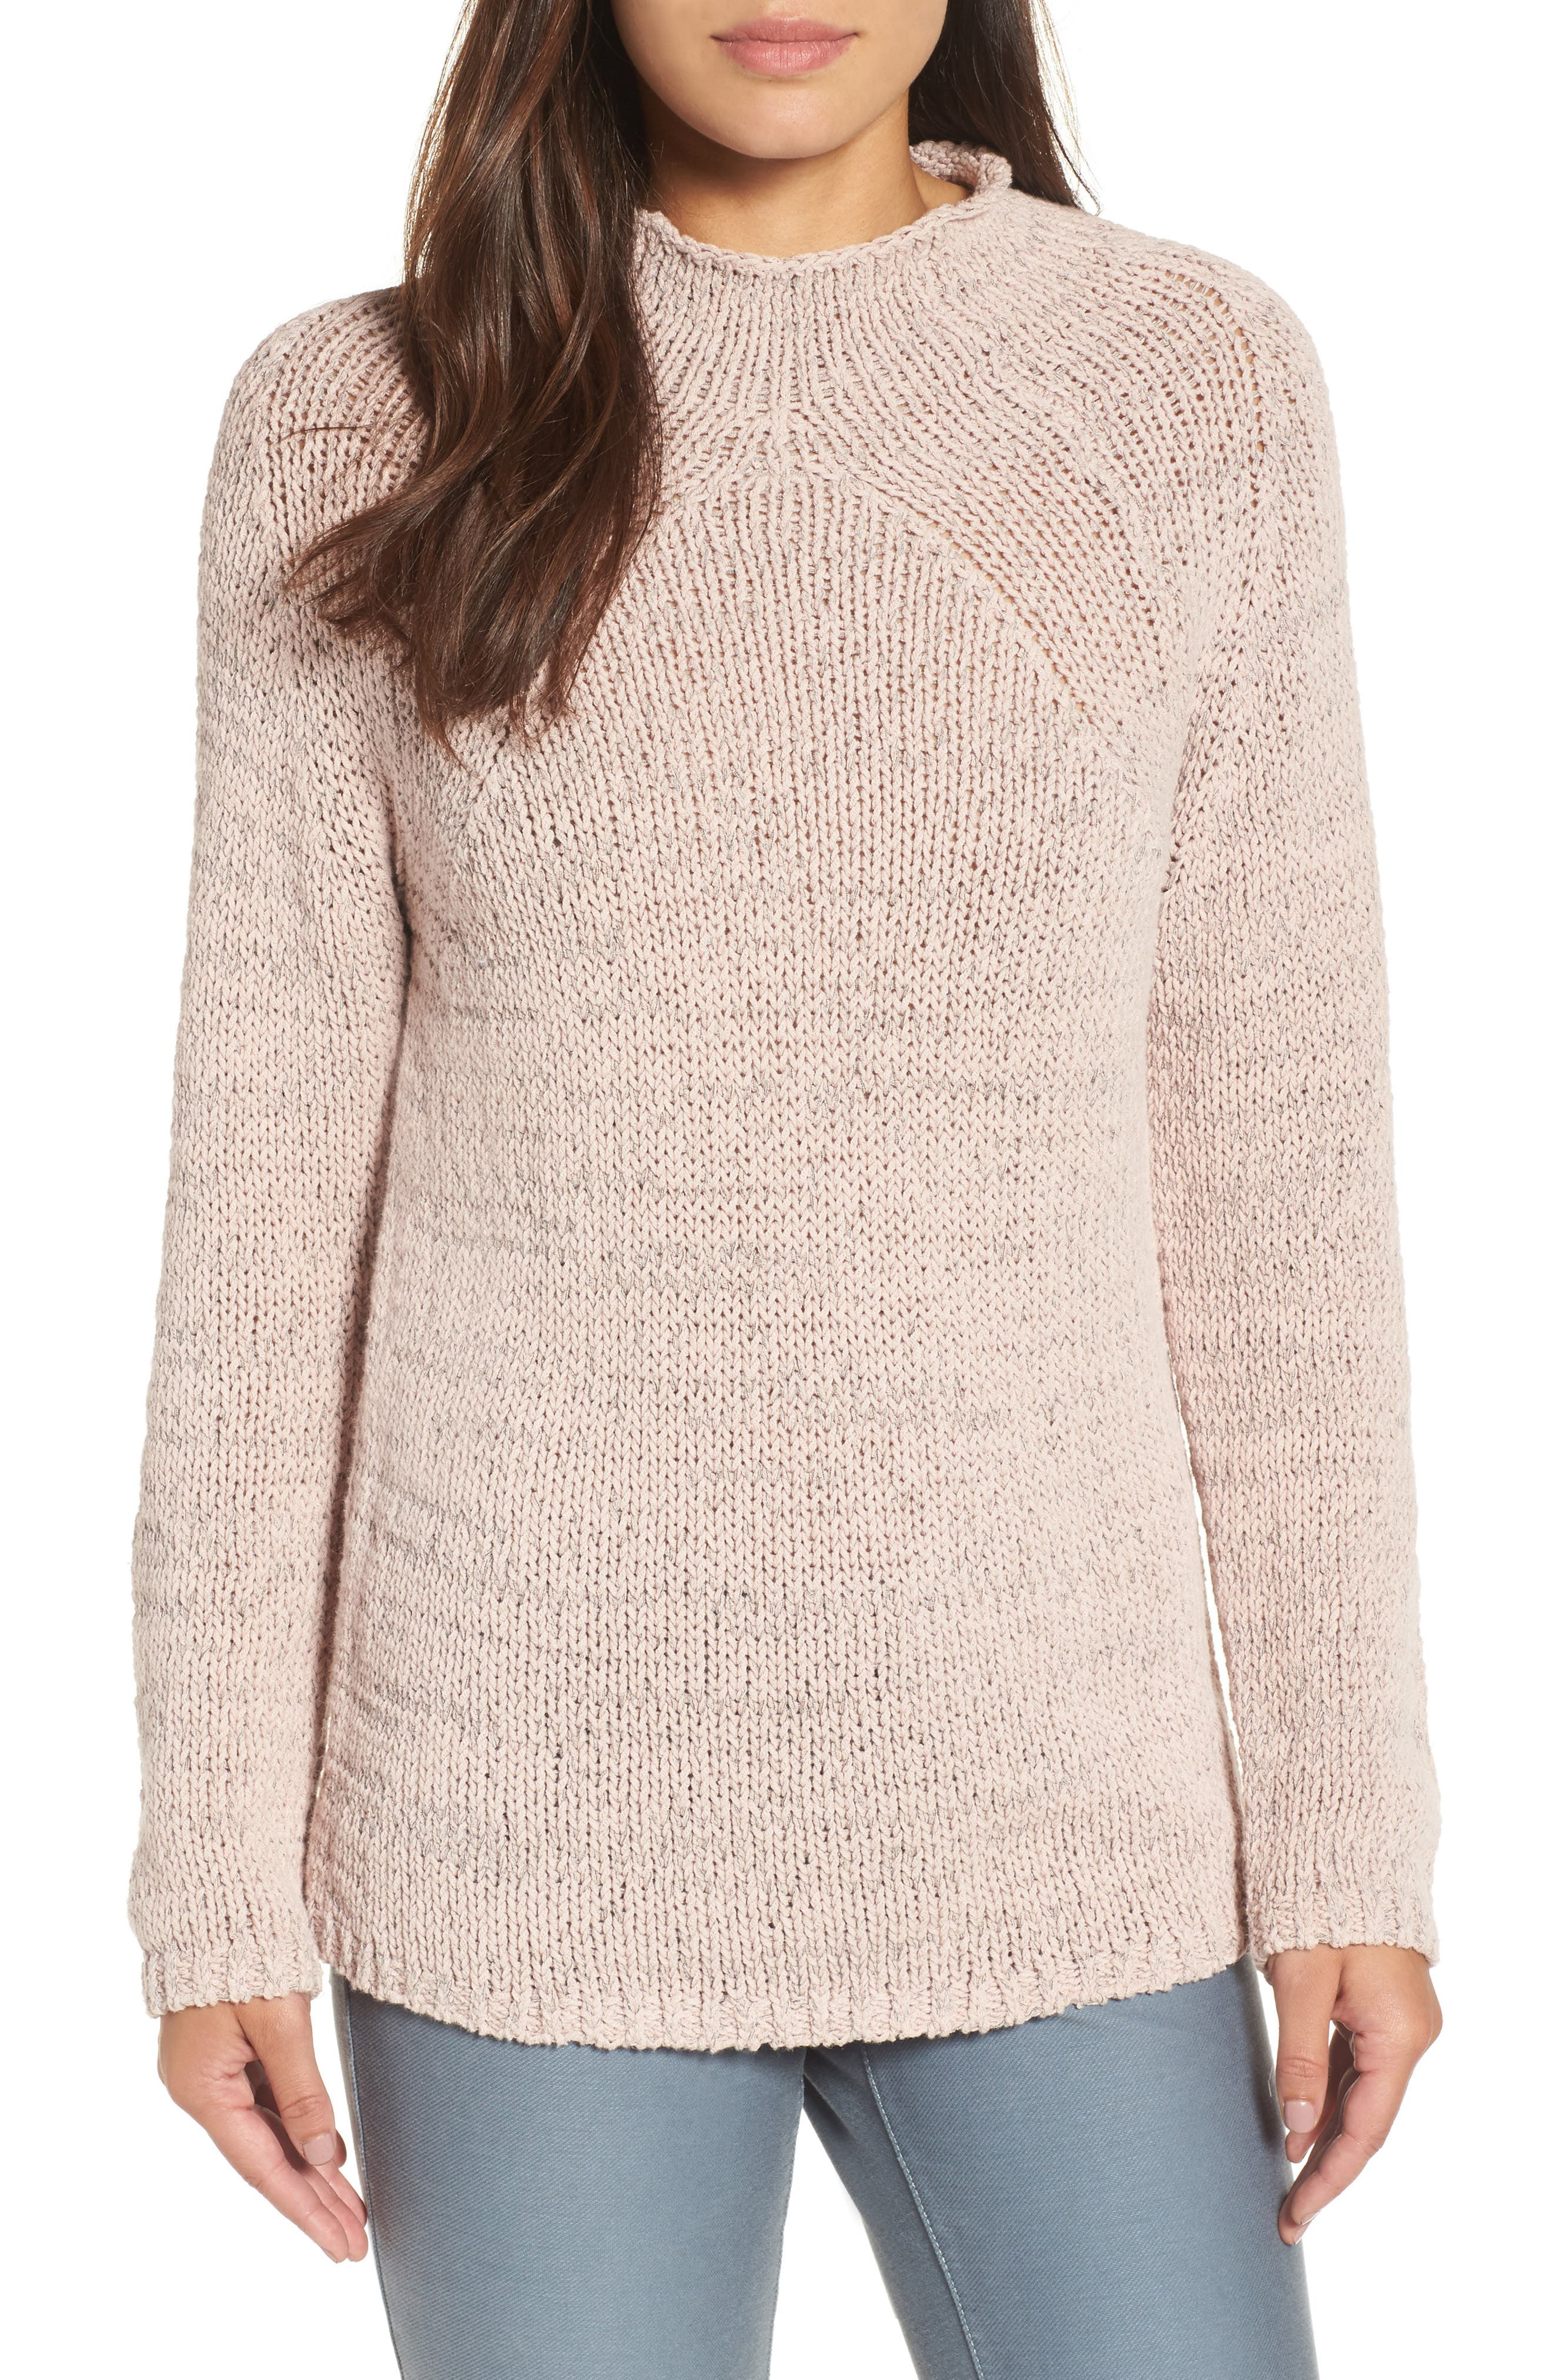 Nic + Zoe Power Move Pullover,                         Main,                         color, 653